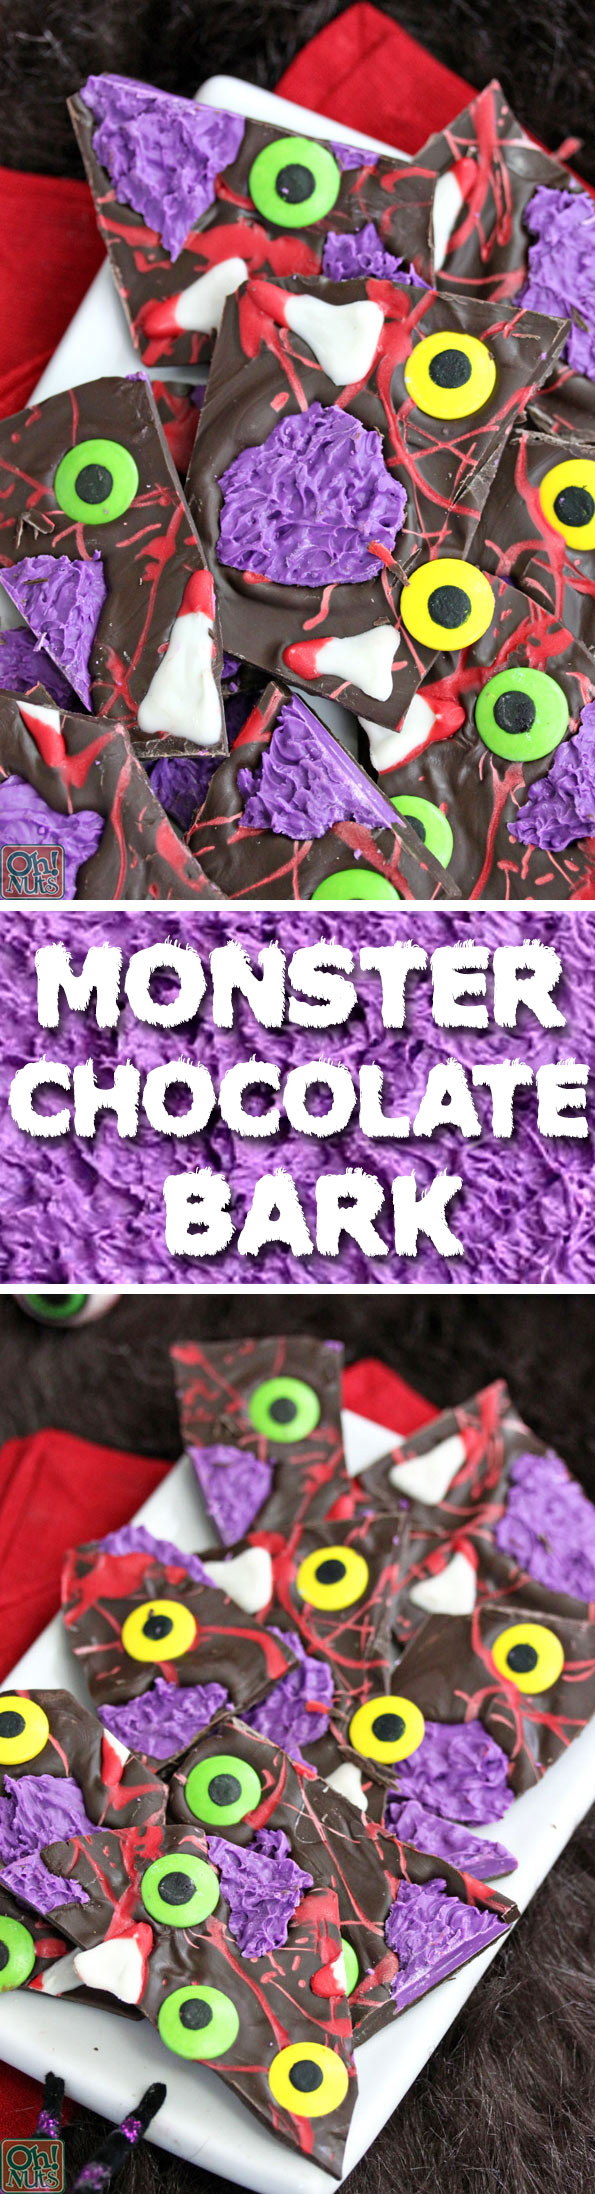 Monster Chocolate Bark | From OhNuts.com